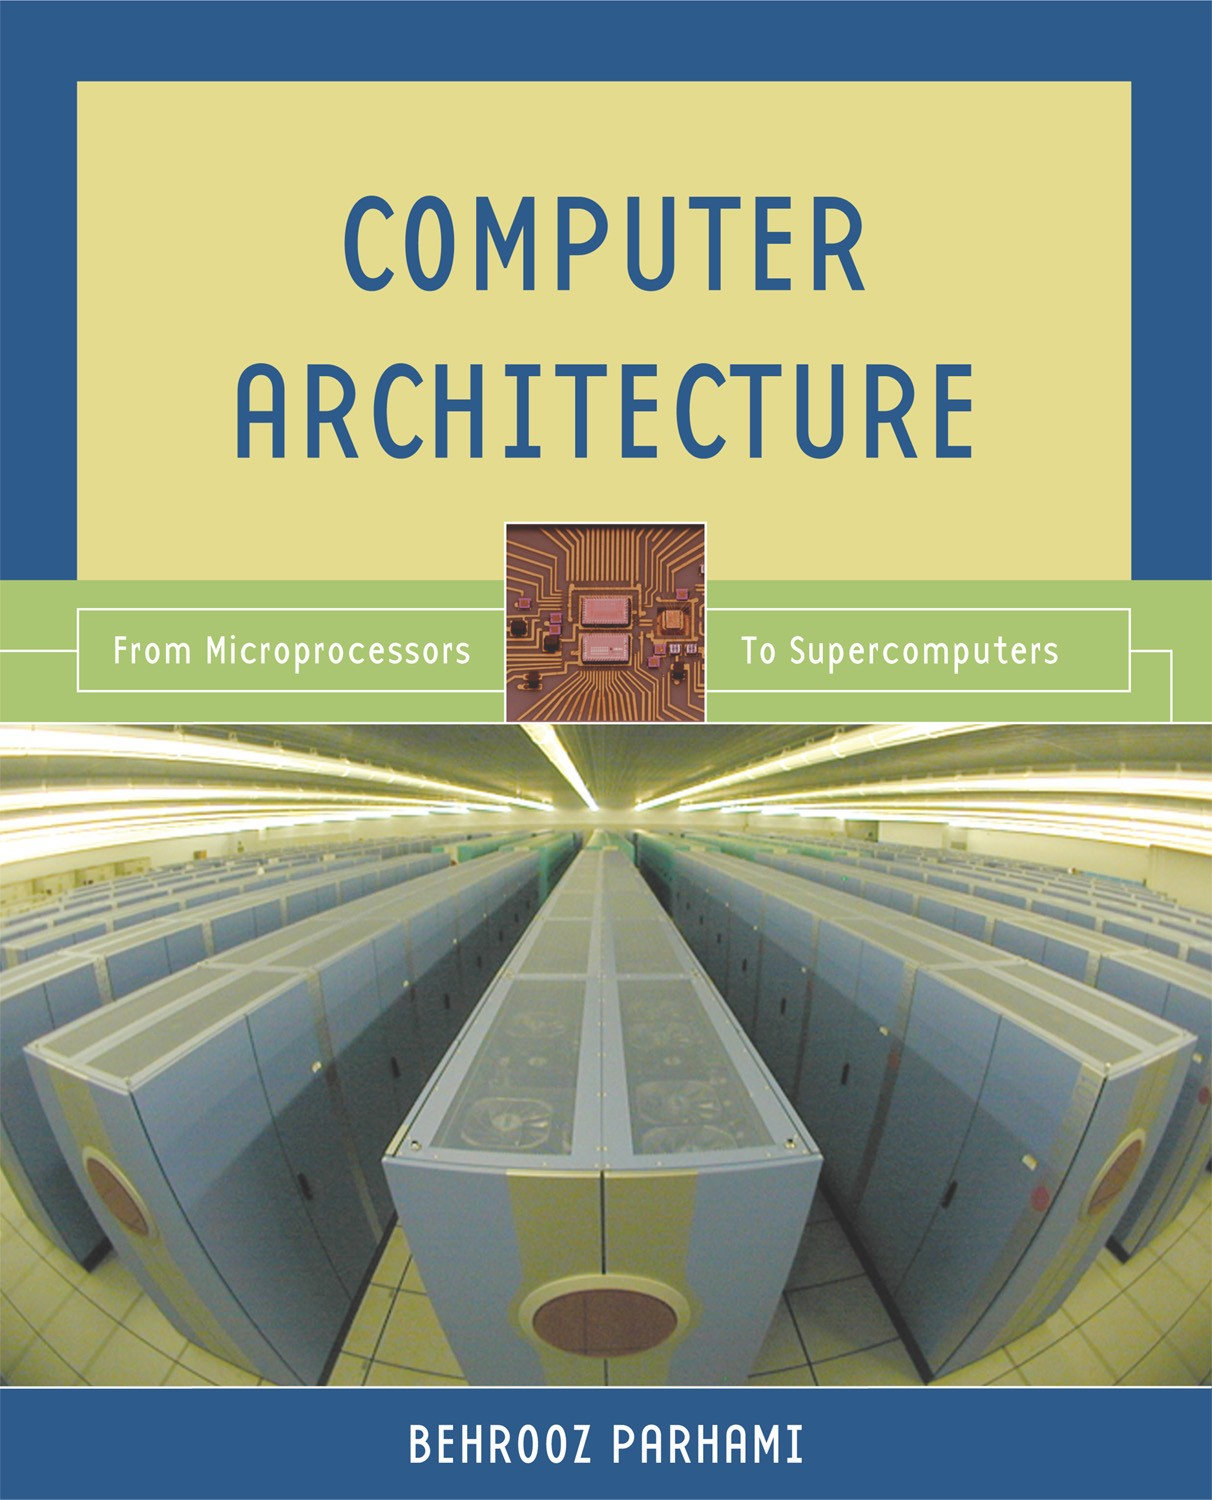 Behrooz Parhami's Textbook on Computer Architecture